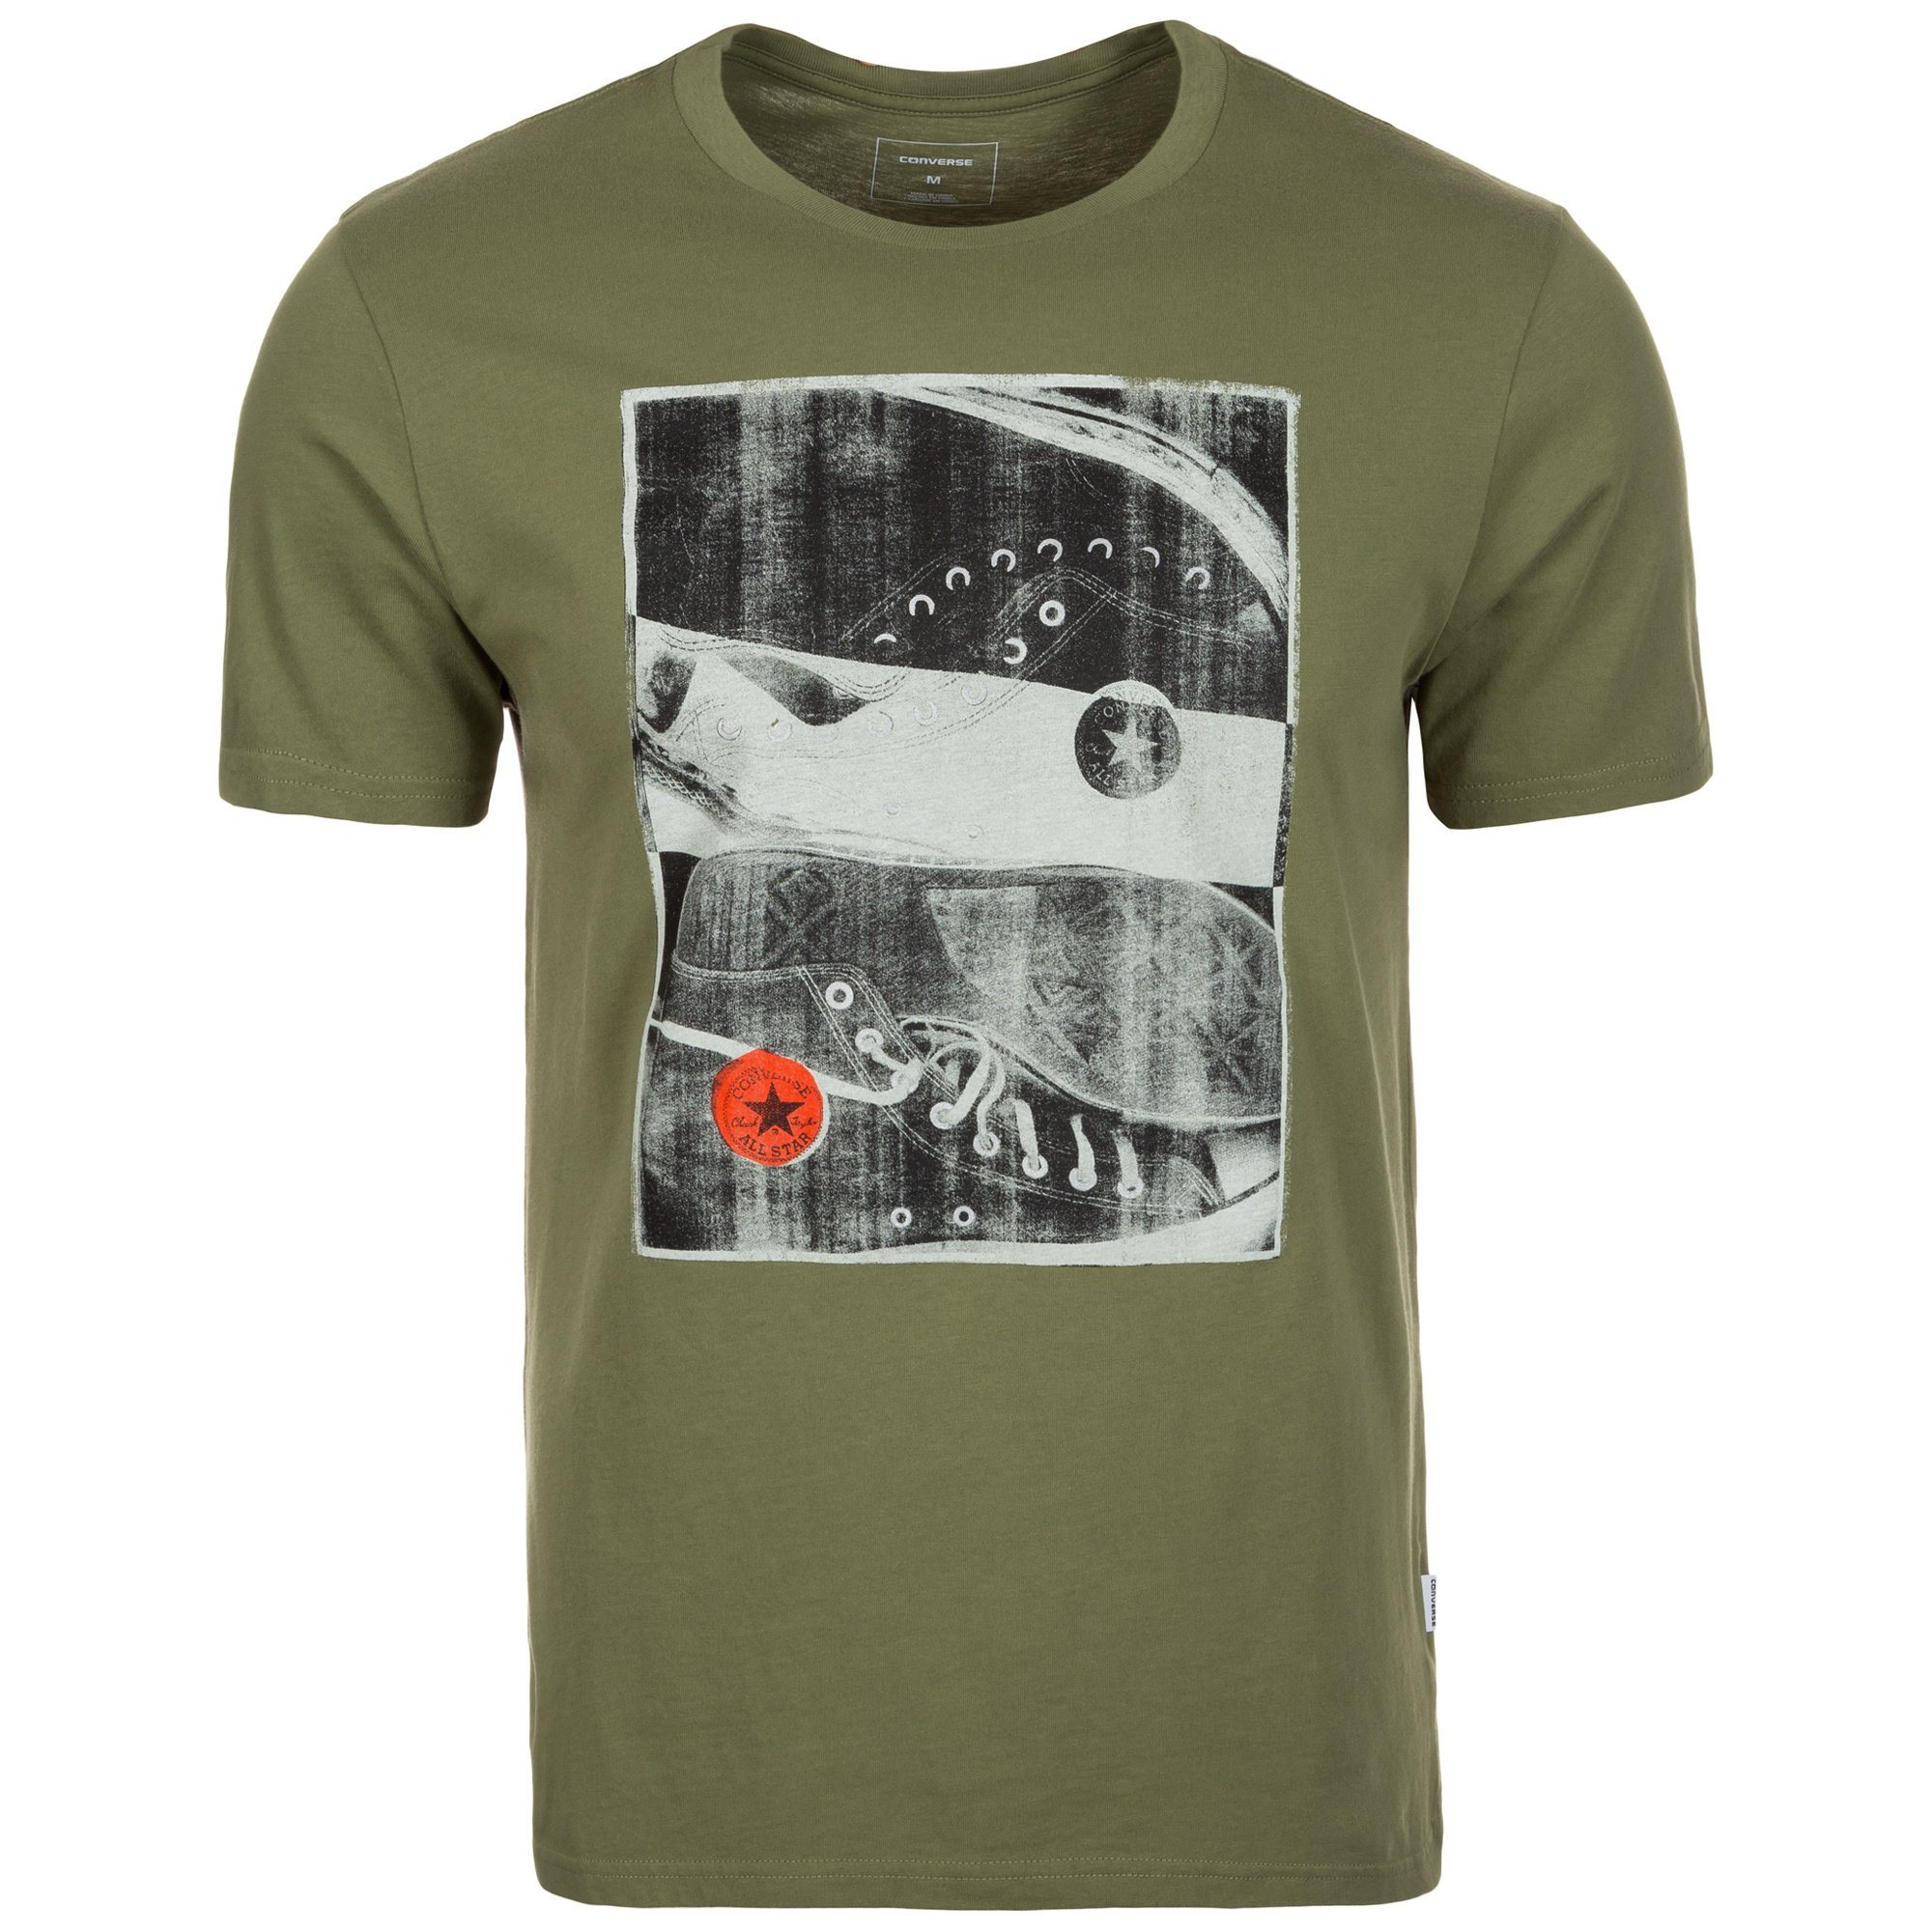 CONVERSE Chucks Photo T-Shirt Herren